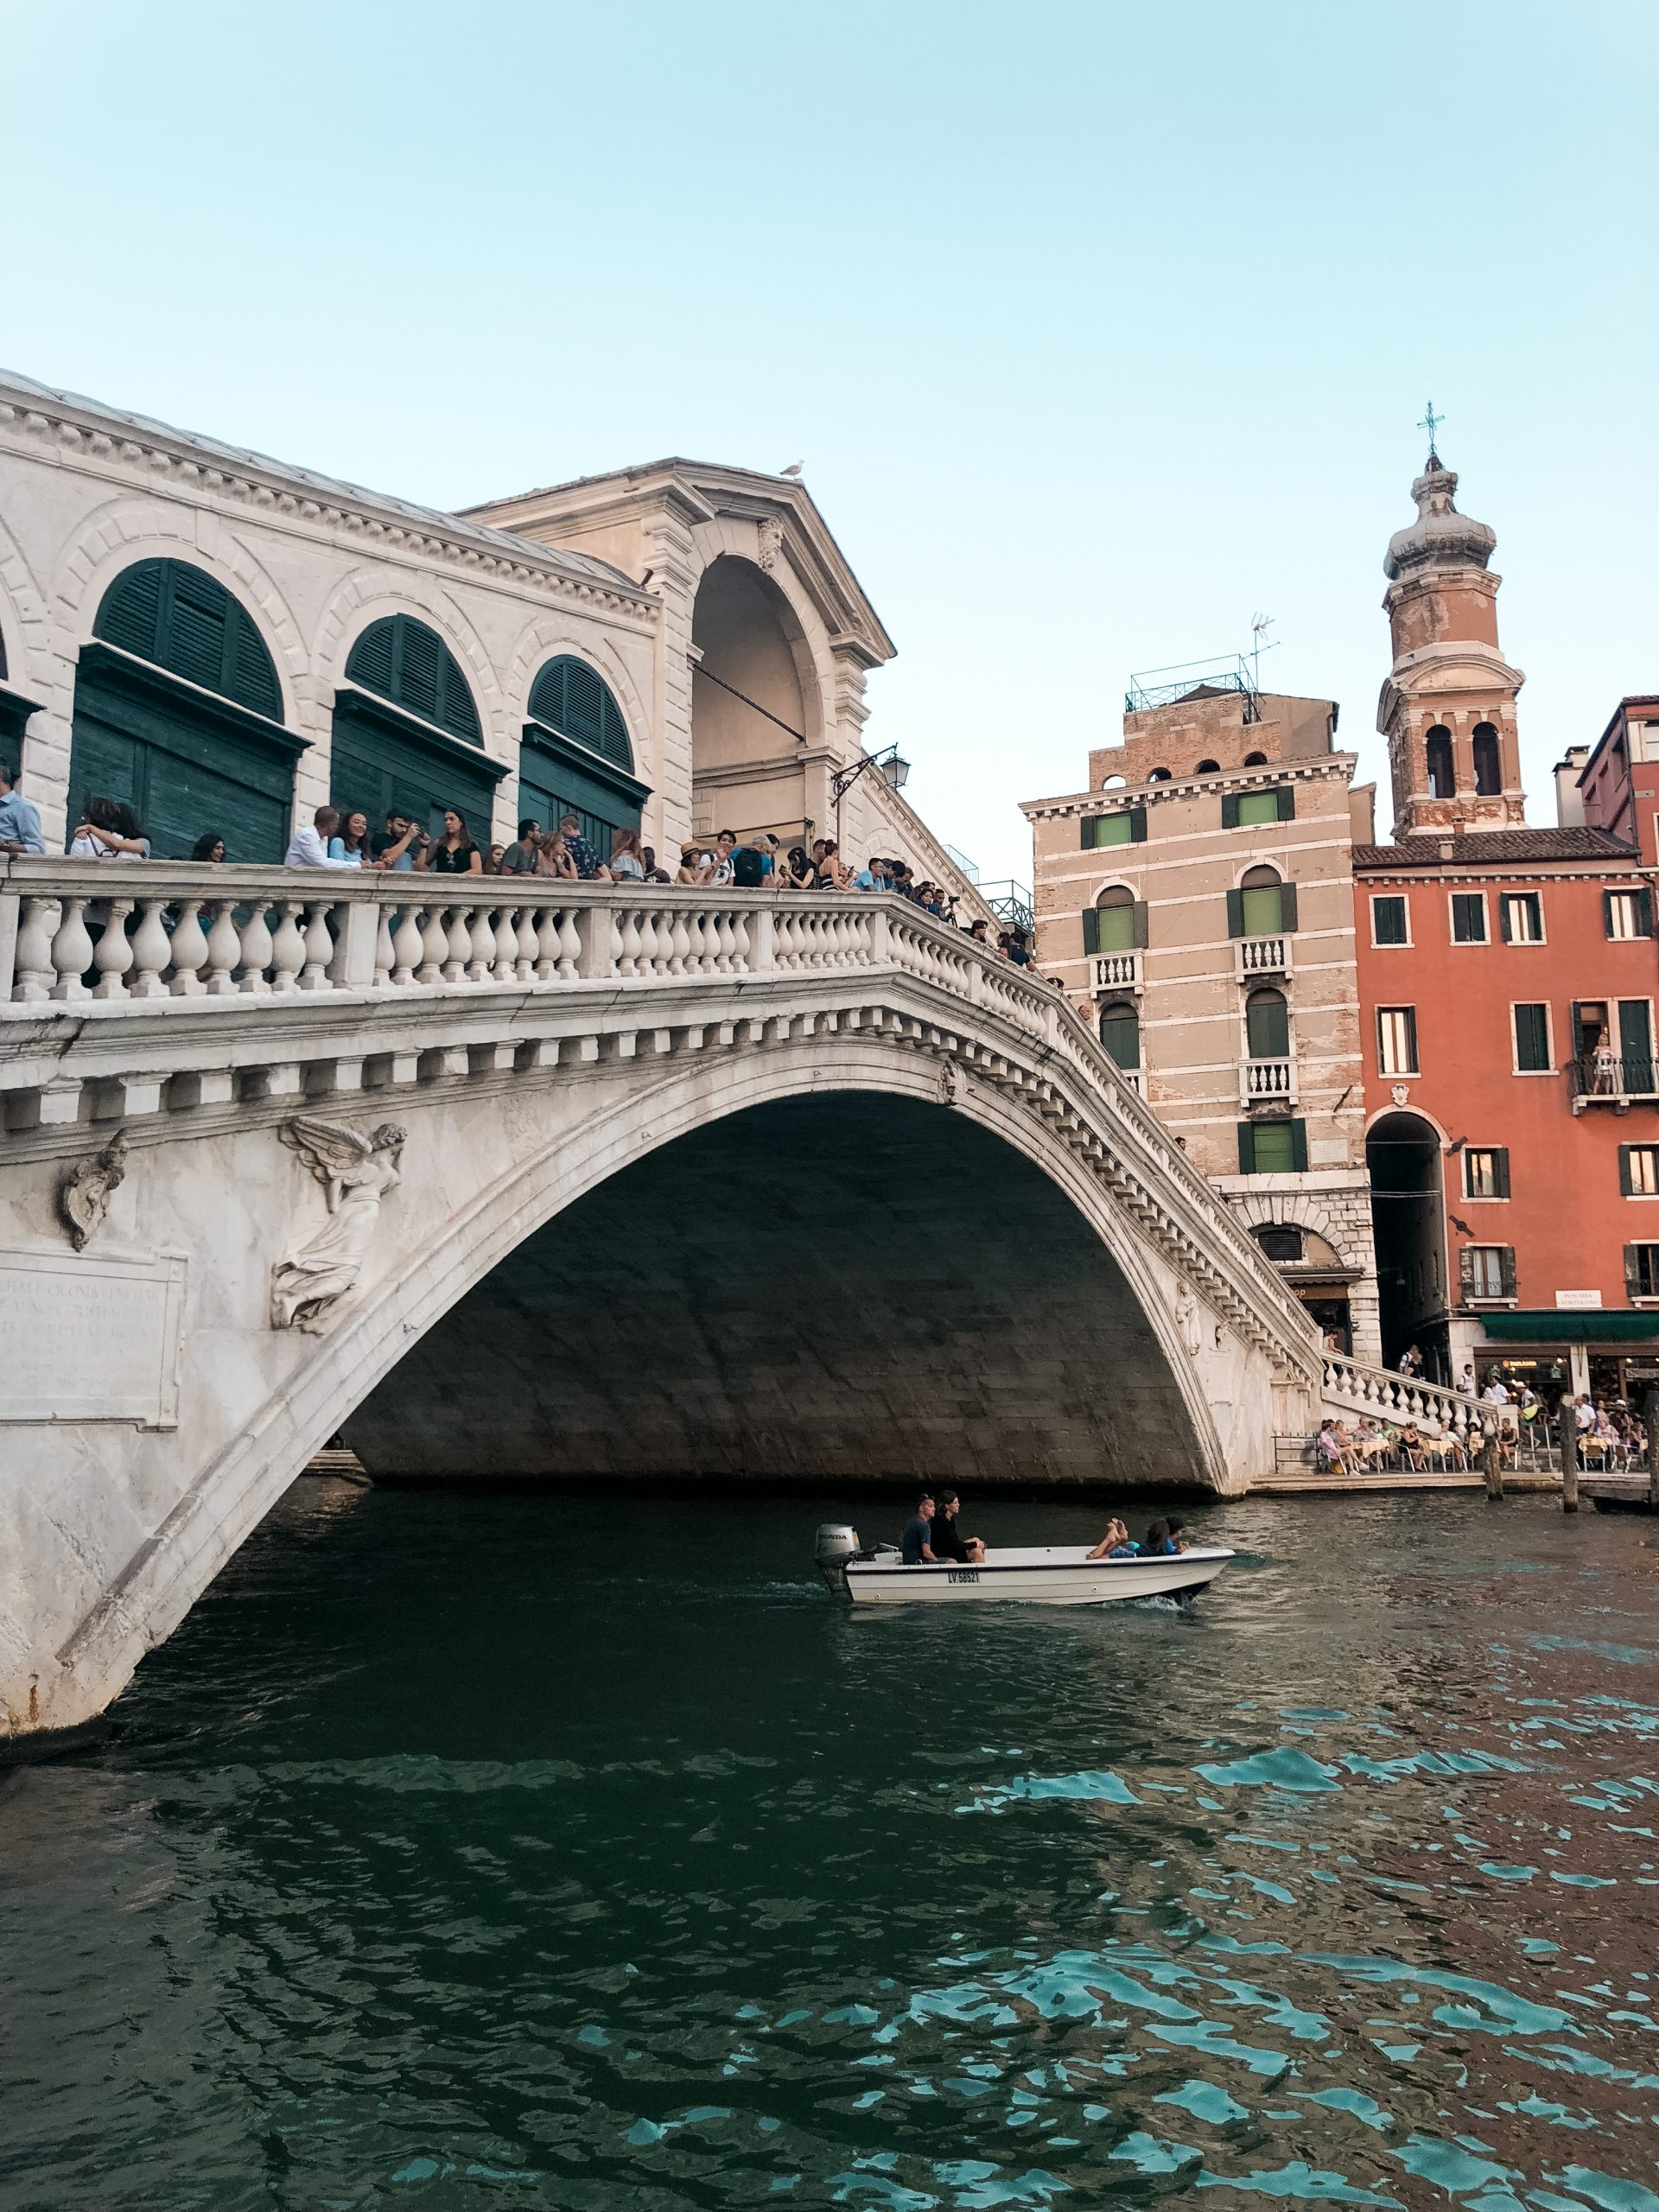 A picture of the Rialto bridge from an angle